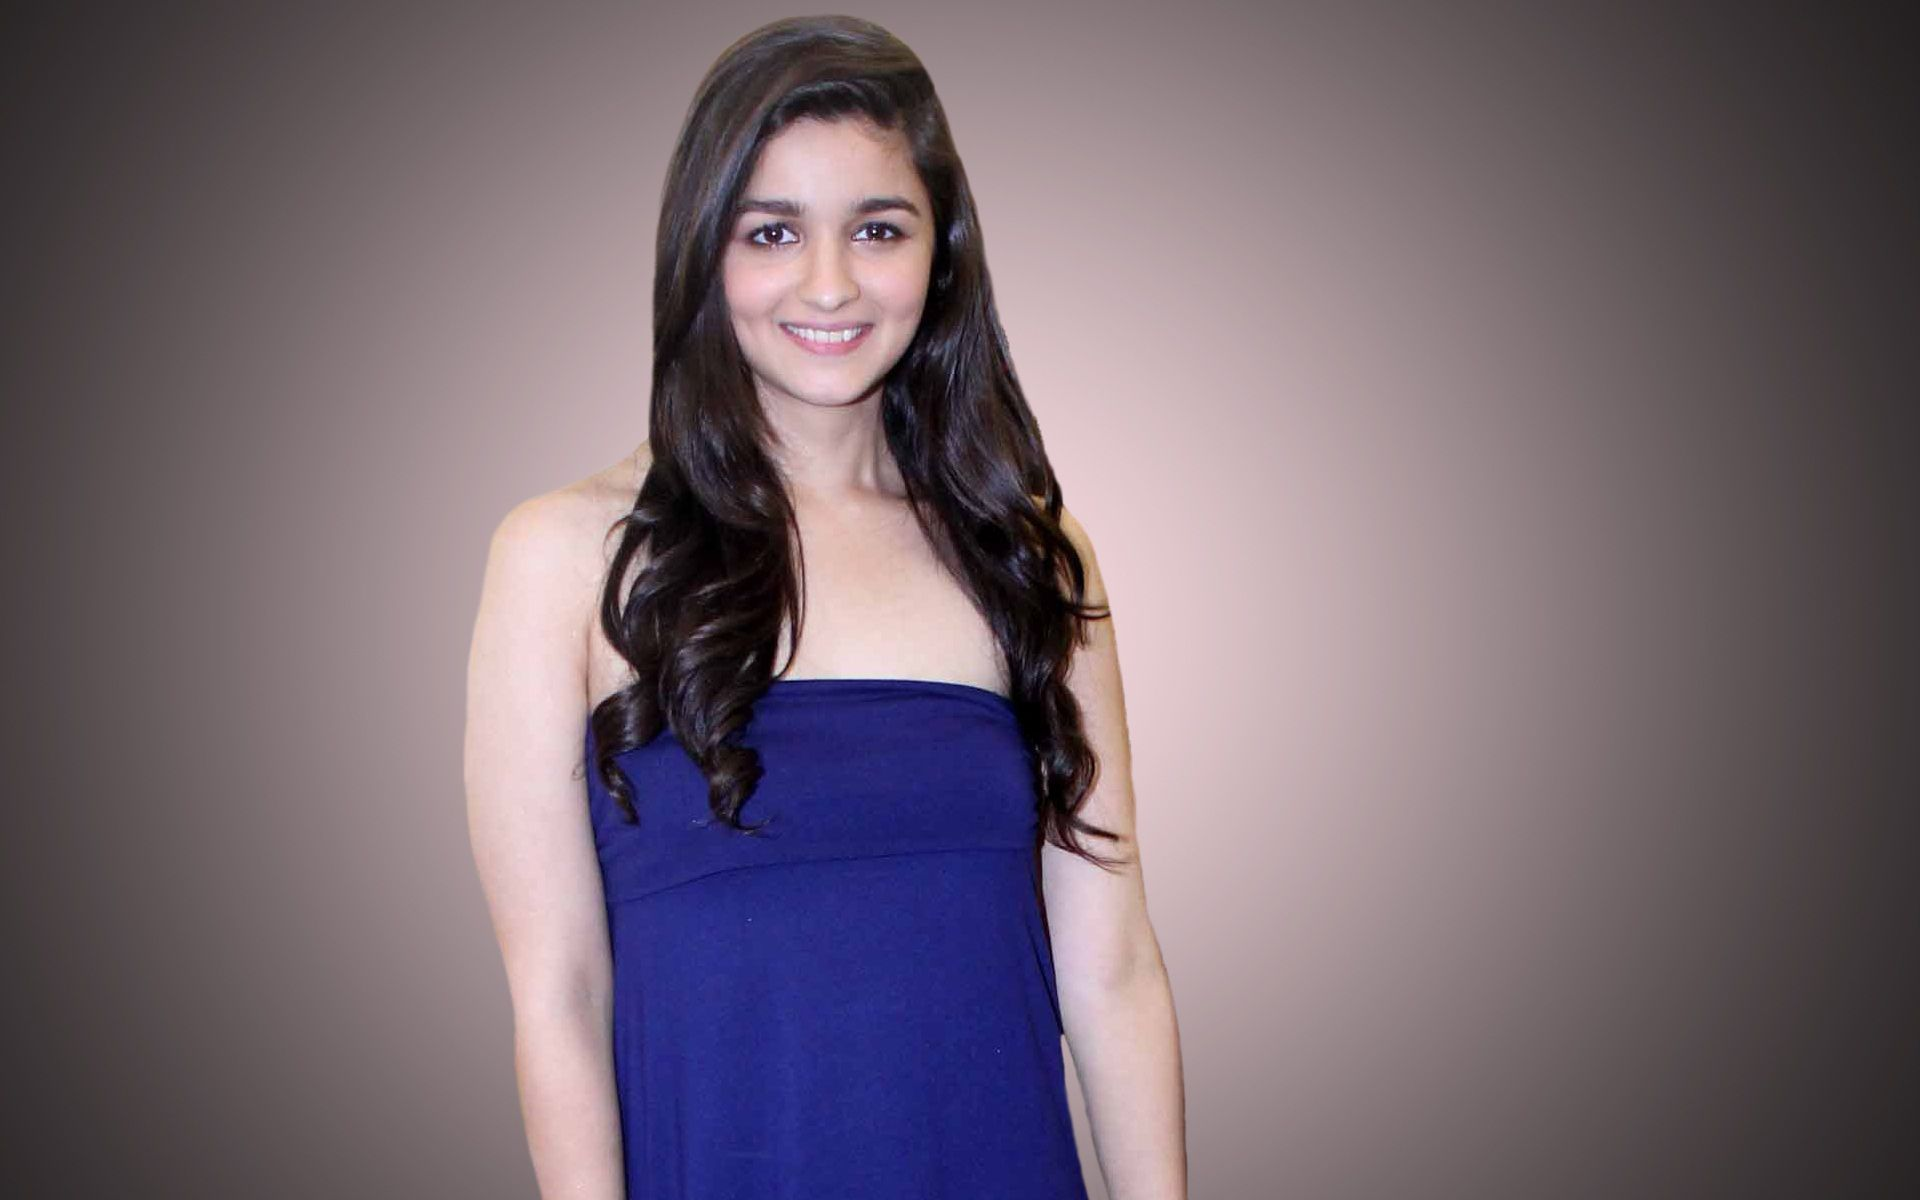 Alia bhatt hot and spicy images wallpapers - Cute Actress Alia Bhatt Hd Wallpapers Download Hd Walls 1280 960 Alia Bhatt Wallpaper